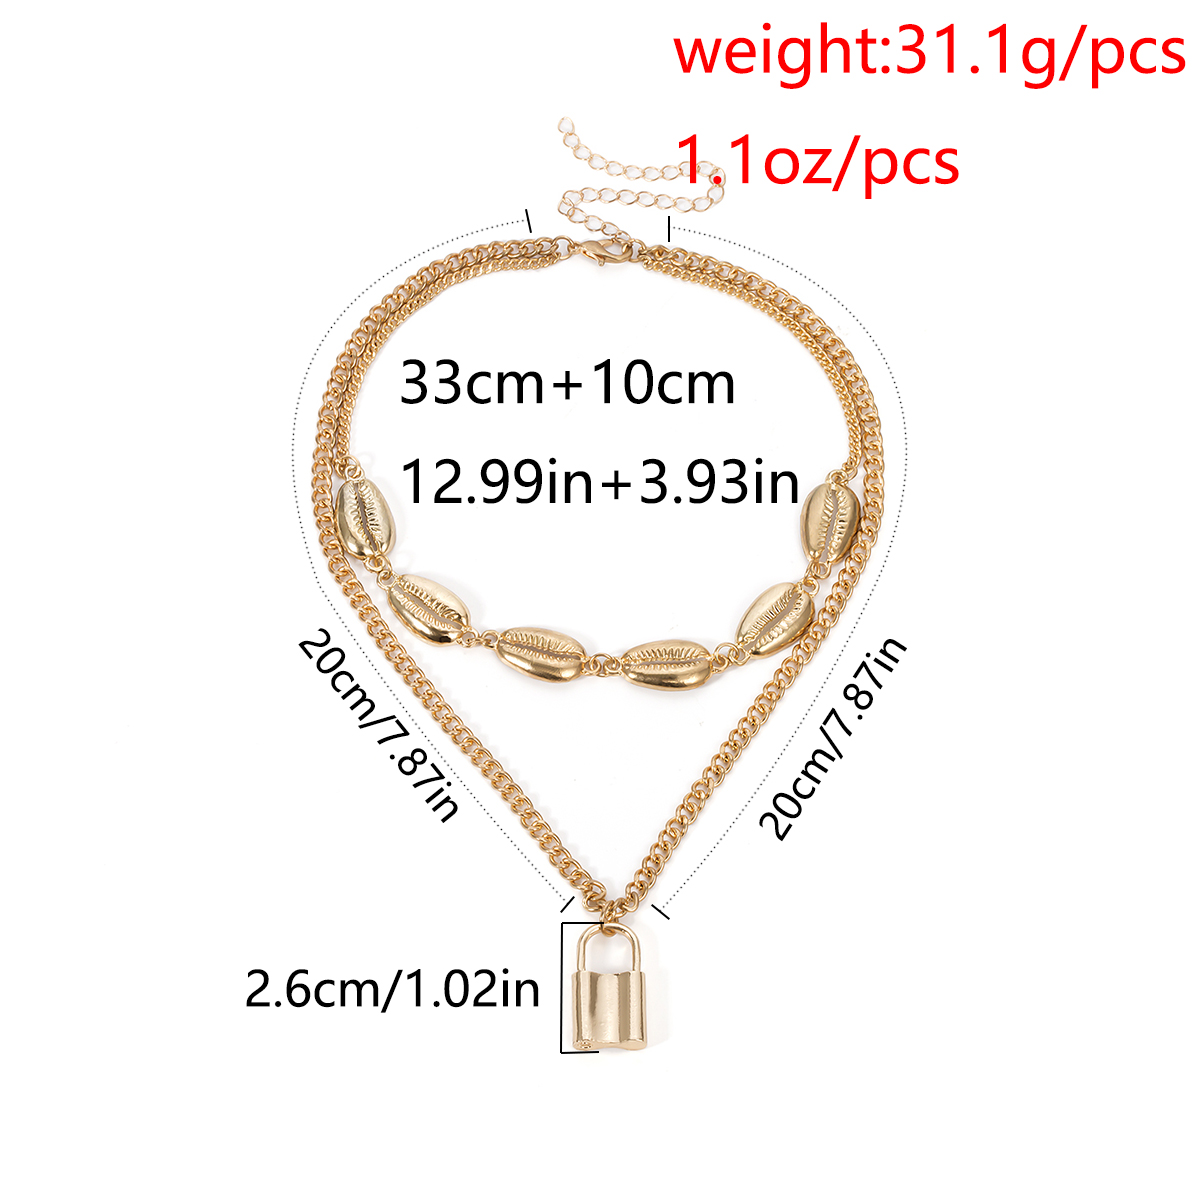 Gold Shell Statement Choker Necklaces For Women Fashion Key Pendant Necklace Wedding Party Collar Jewelry Bijoux Brincos 2019 in Pendant Necklaces from Jewelry Accessories